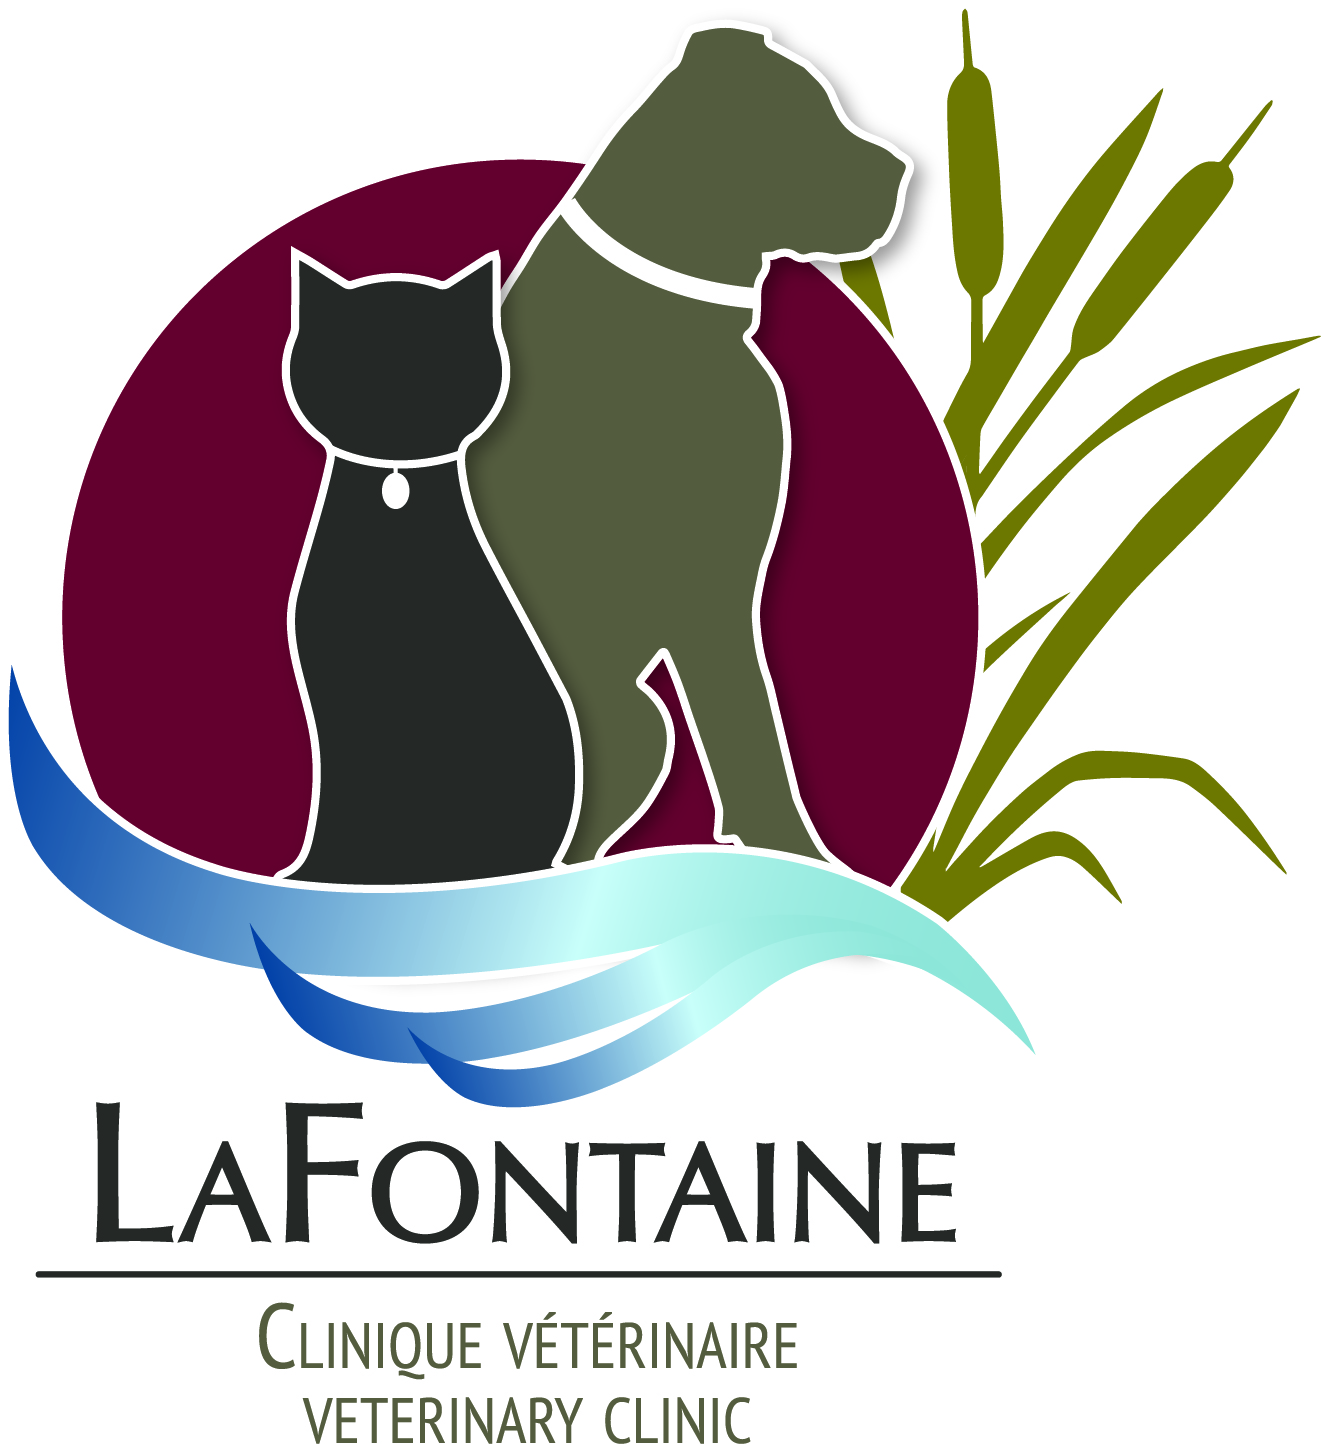 Lafontaine Veterinary Clinic